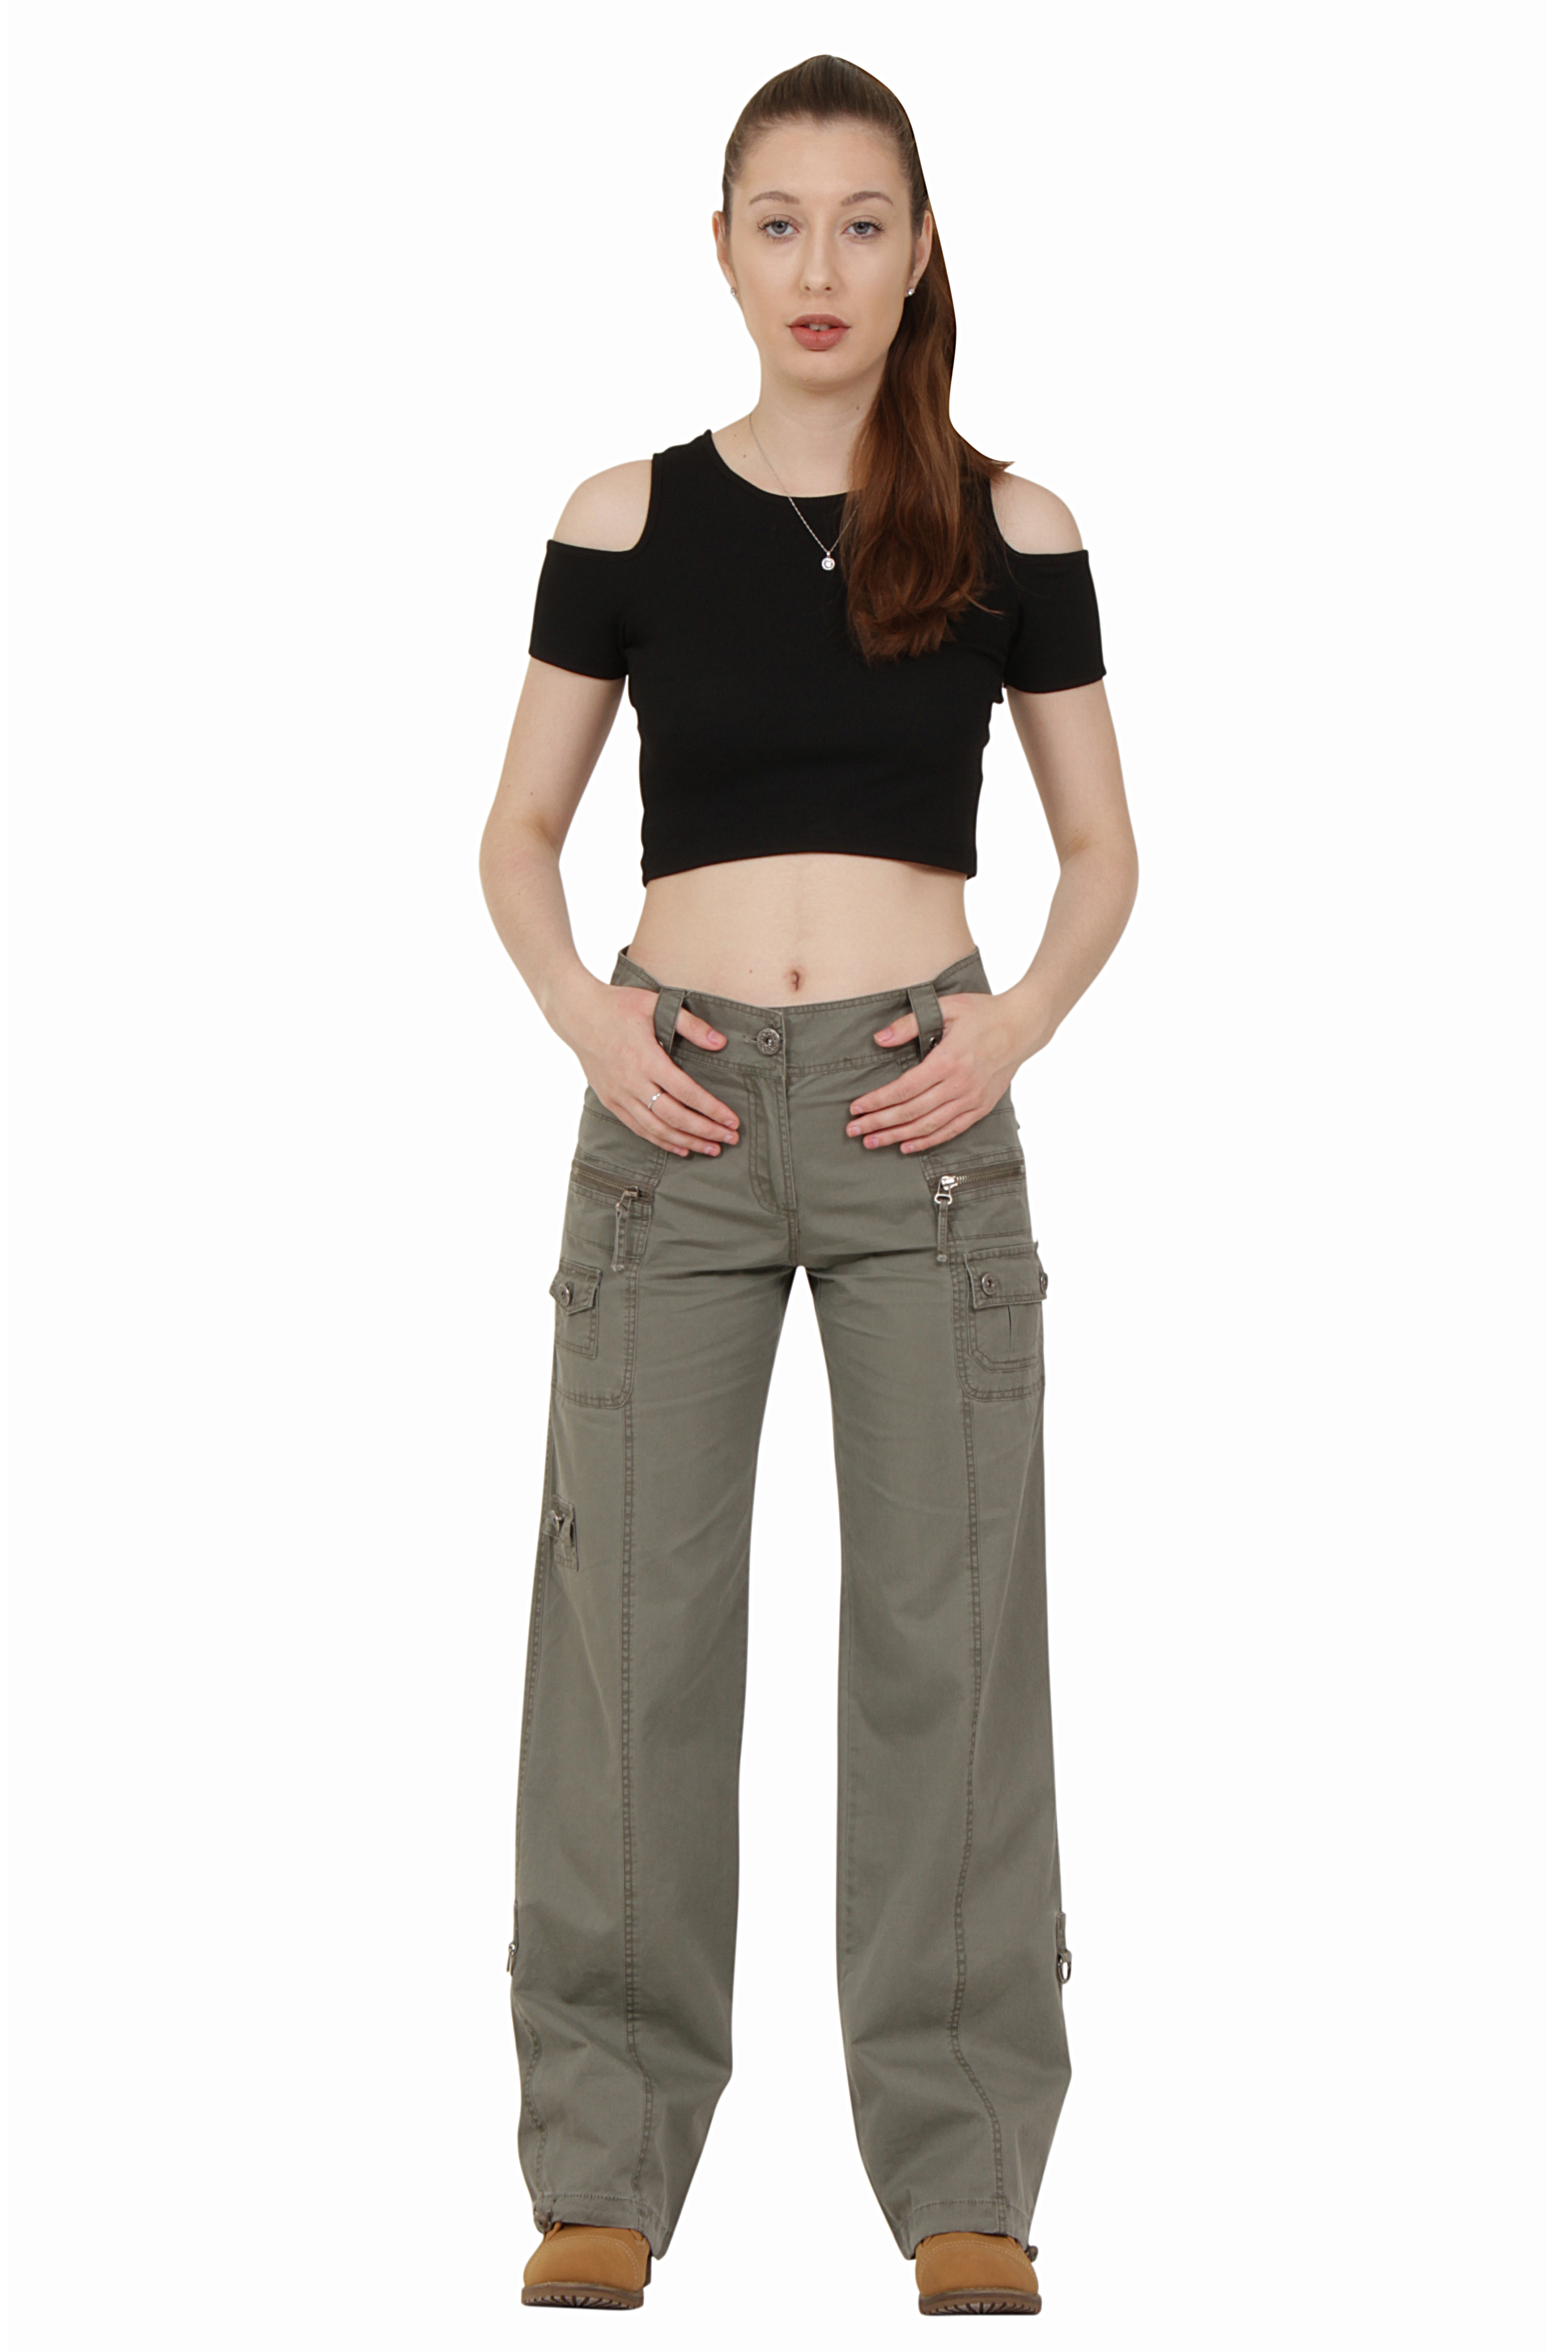 Popular Womens Military Army Fashion Green Cargo Pocket Pants Leisure Trousers